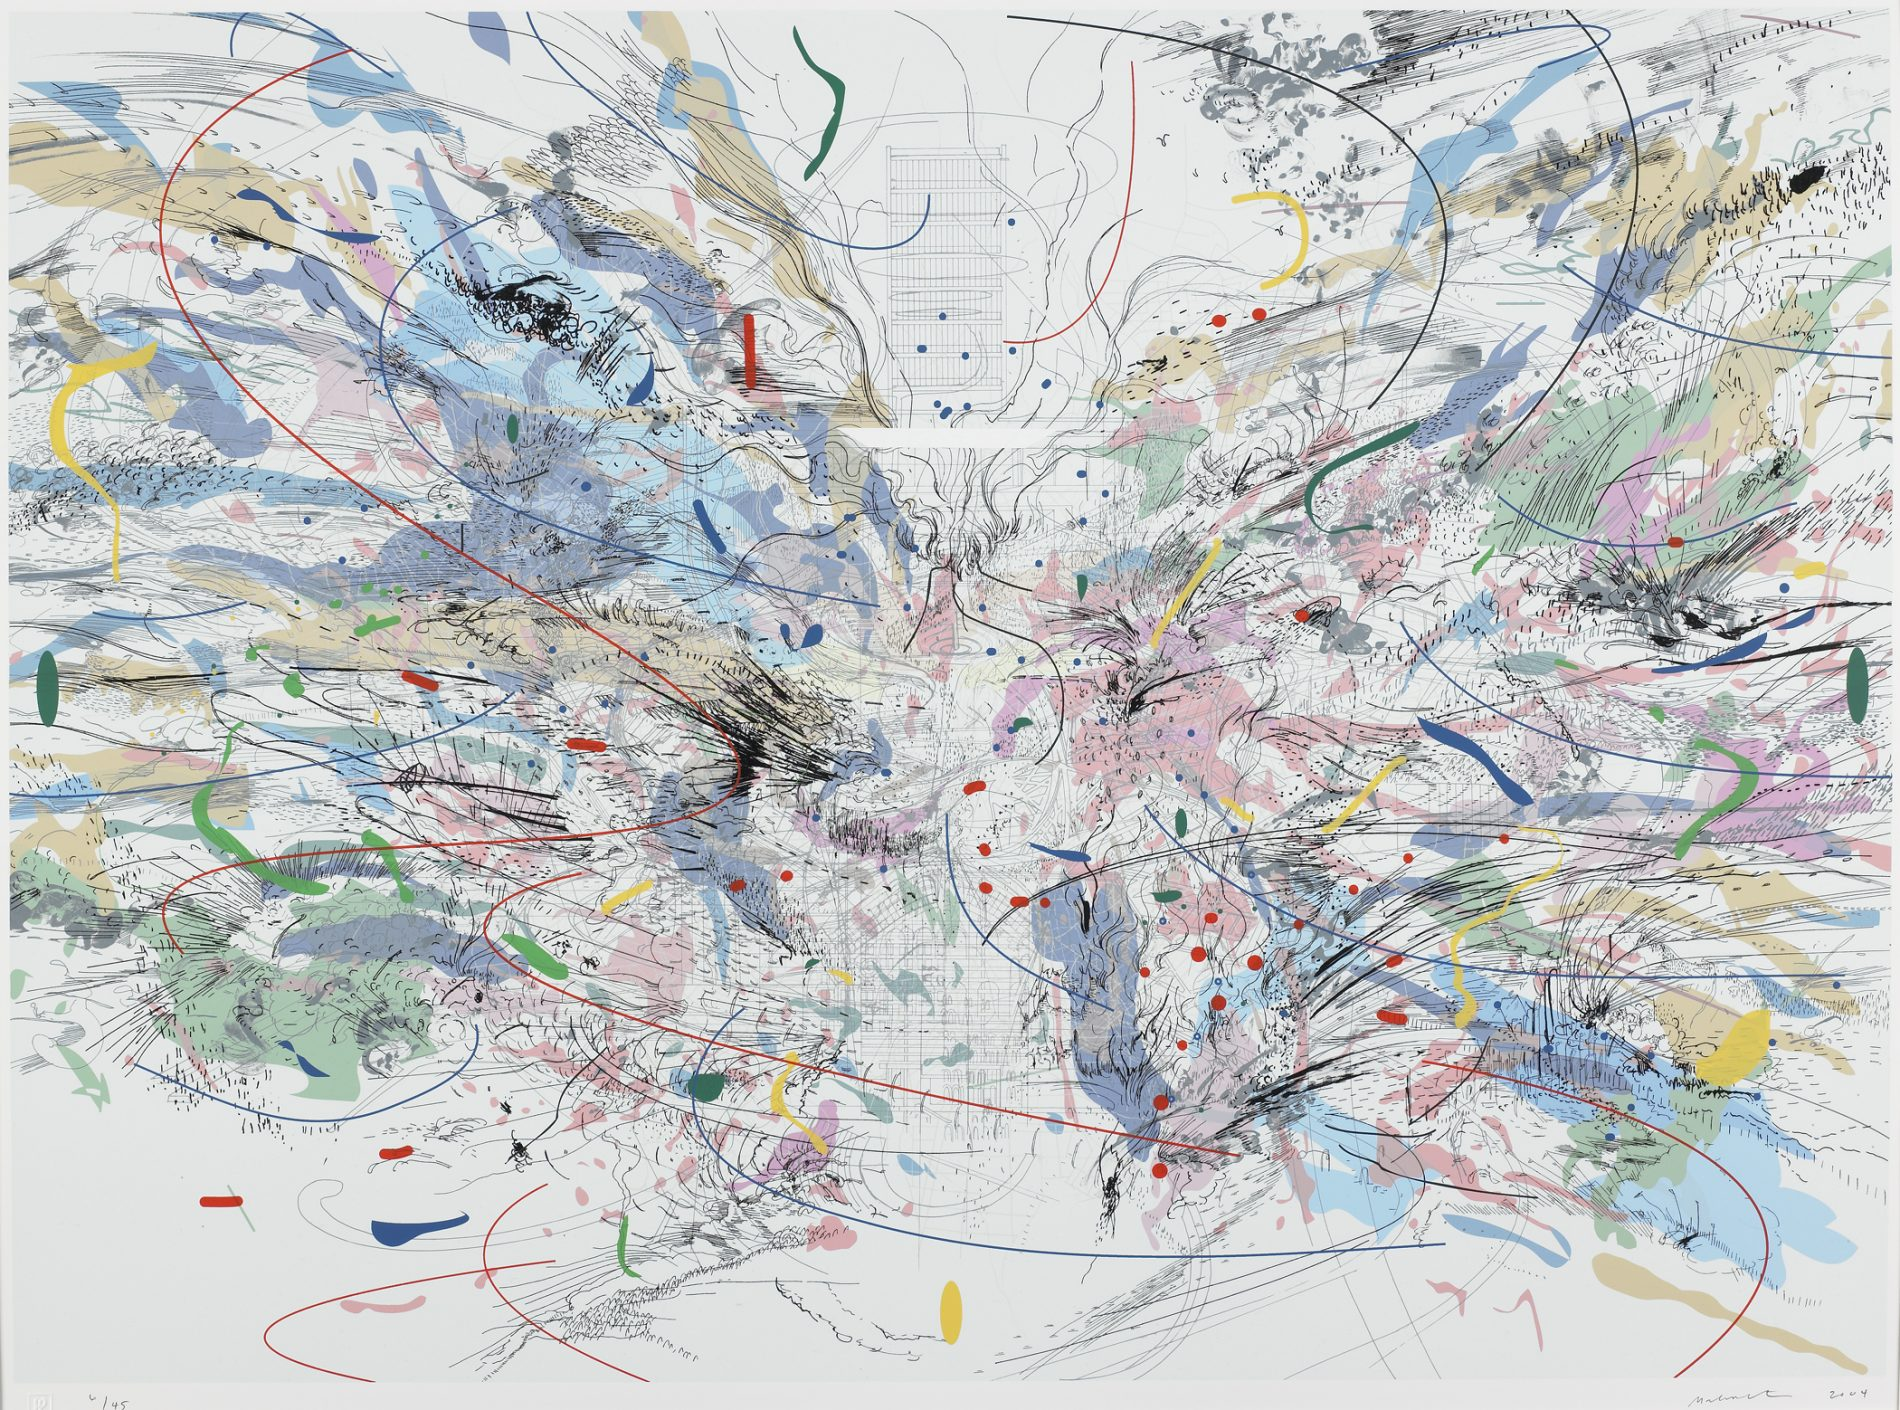 Julie Mehretu, American (born Ethiopia), 1970, 'Entropia (review),' 2004. Color screenprint and lithograph on wove paper; edition of 45, plus 6 artist's proofs. 29 × 40 in. (73.66 × 101.6 cm) (image); 33 1/2 × 44 in. (85.09 × 111.76 cm) (sheet) Highpoint Editions Archive, The Friends of Bruce B. Dayton Acquisition Fund and the Christina N. and Swan J. Turnblad Memorial Fund 2020.85.68 Credit line: Copyright © Julie Mehretu, co-published by Highpoint Editions and Walker Art Center.